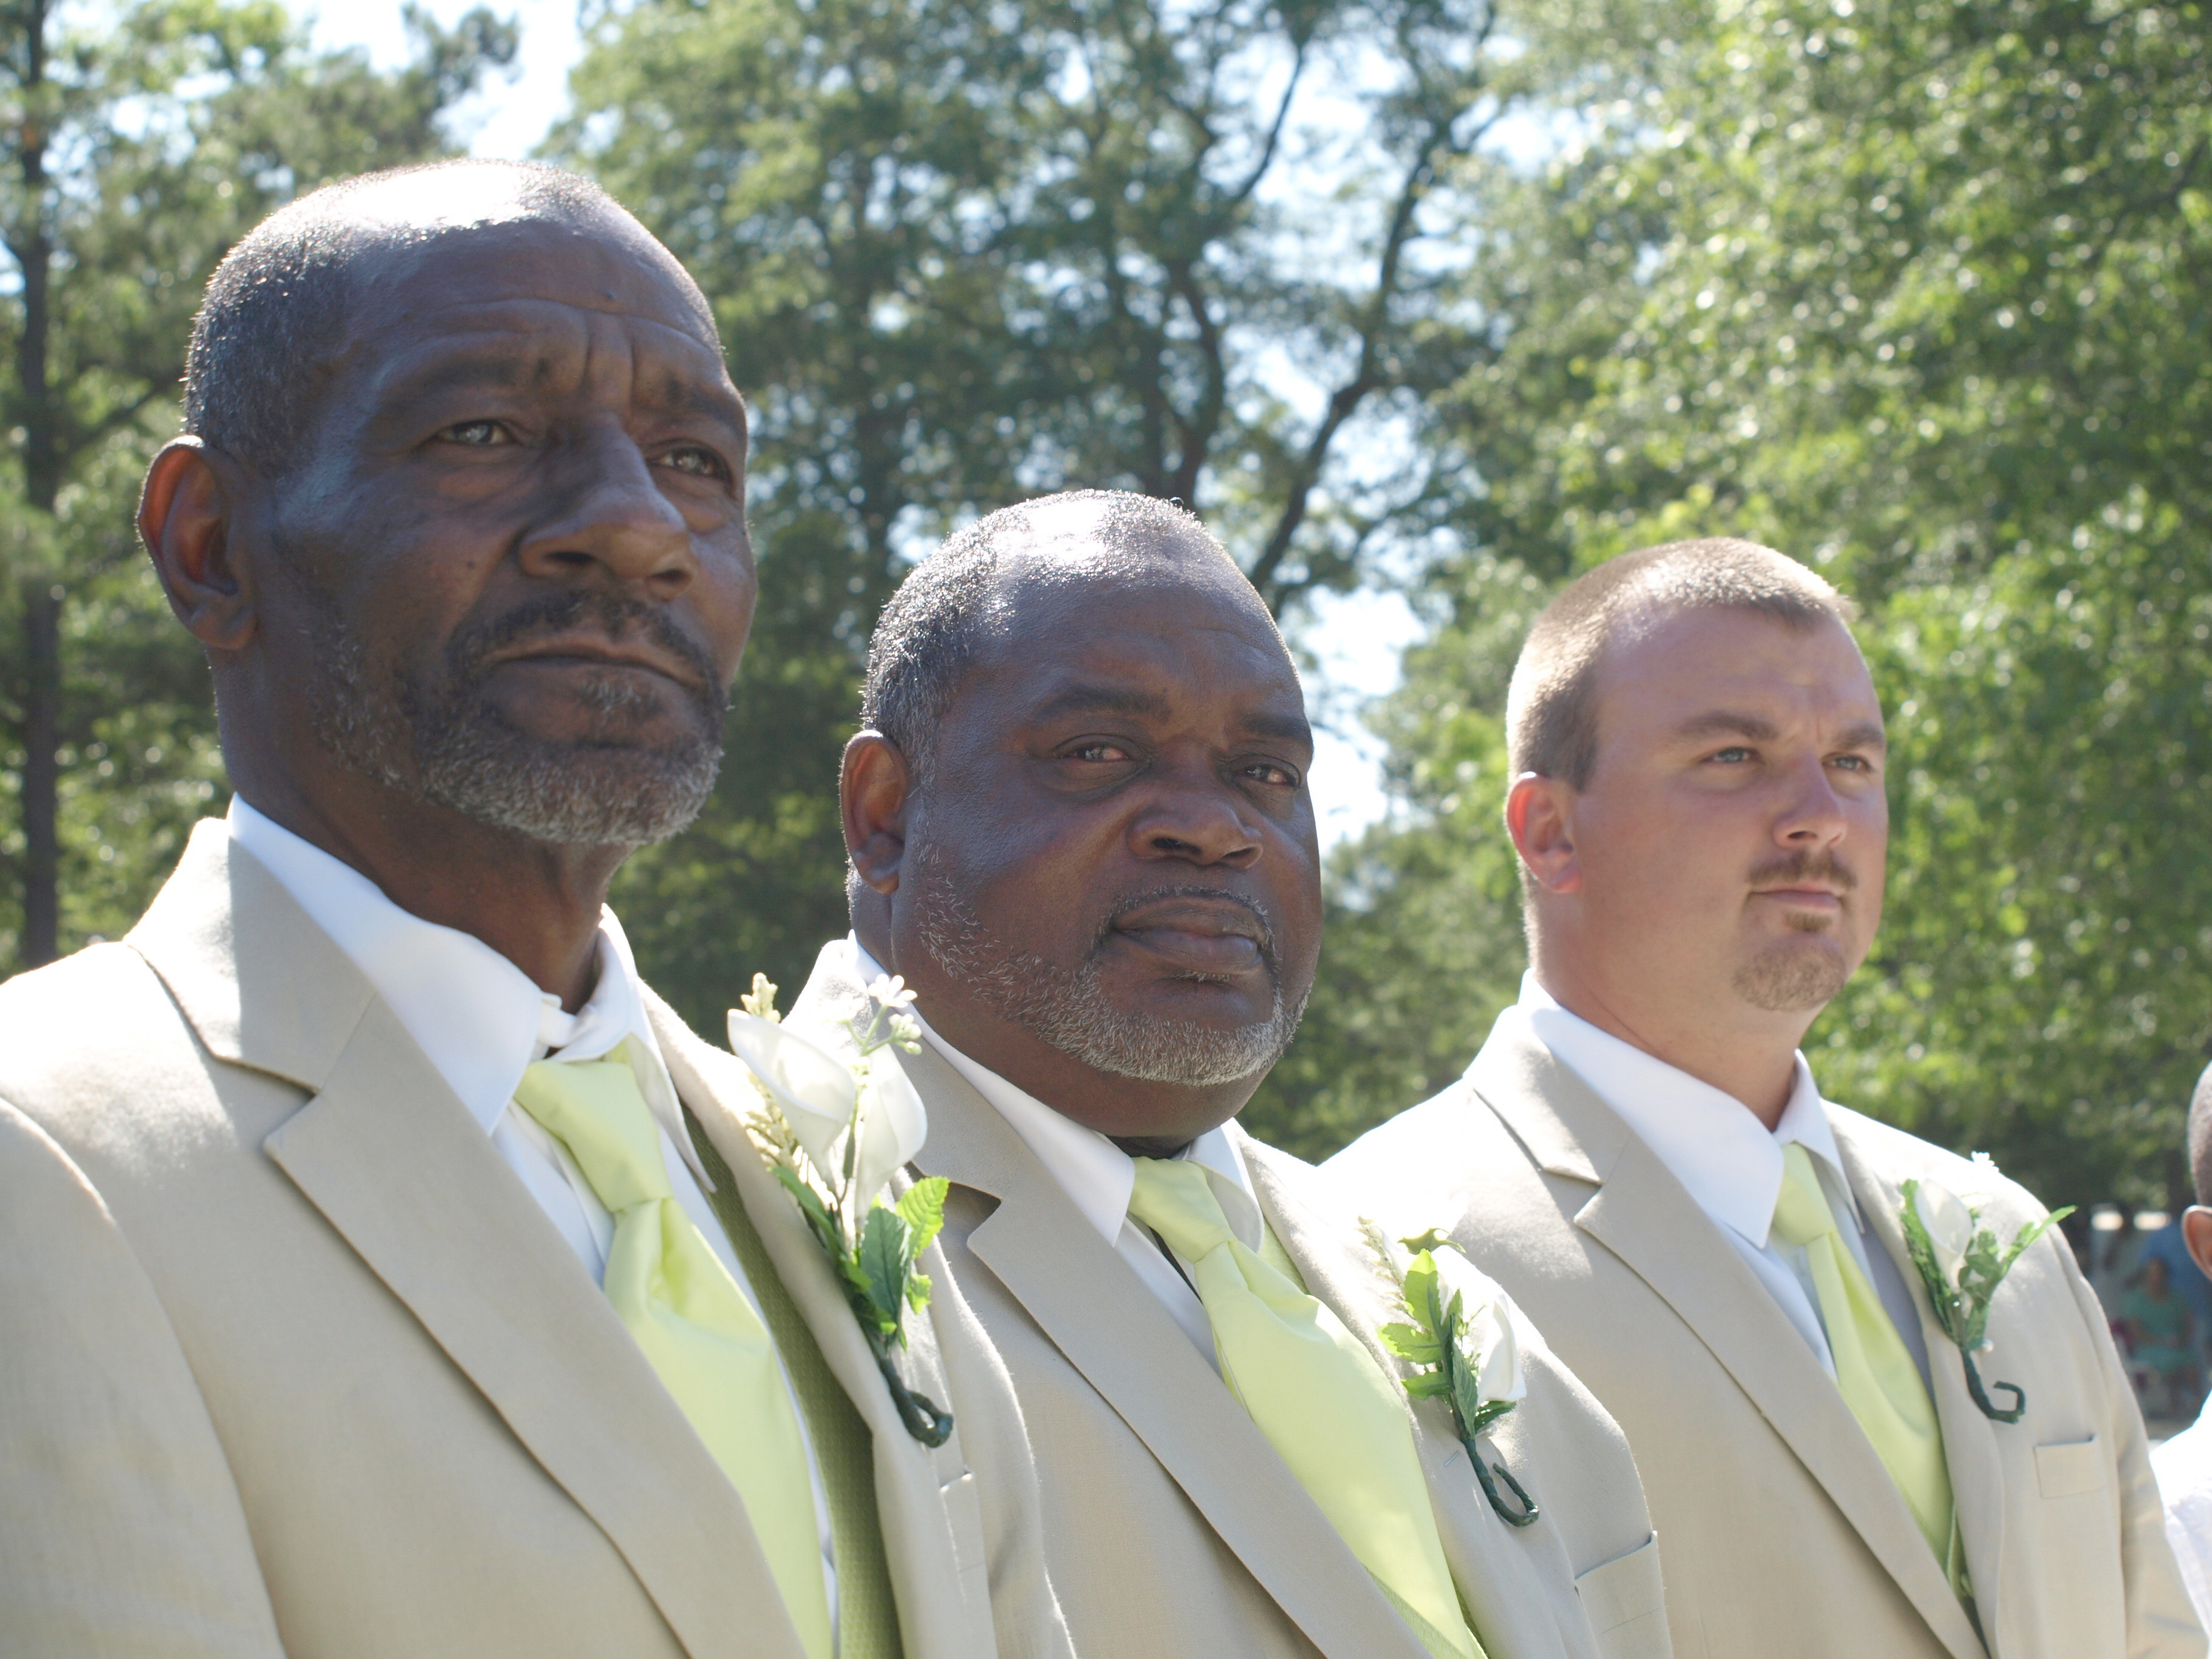 Groomsmen, Linen, Suits